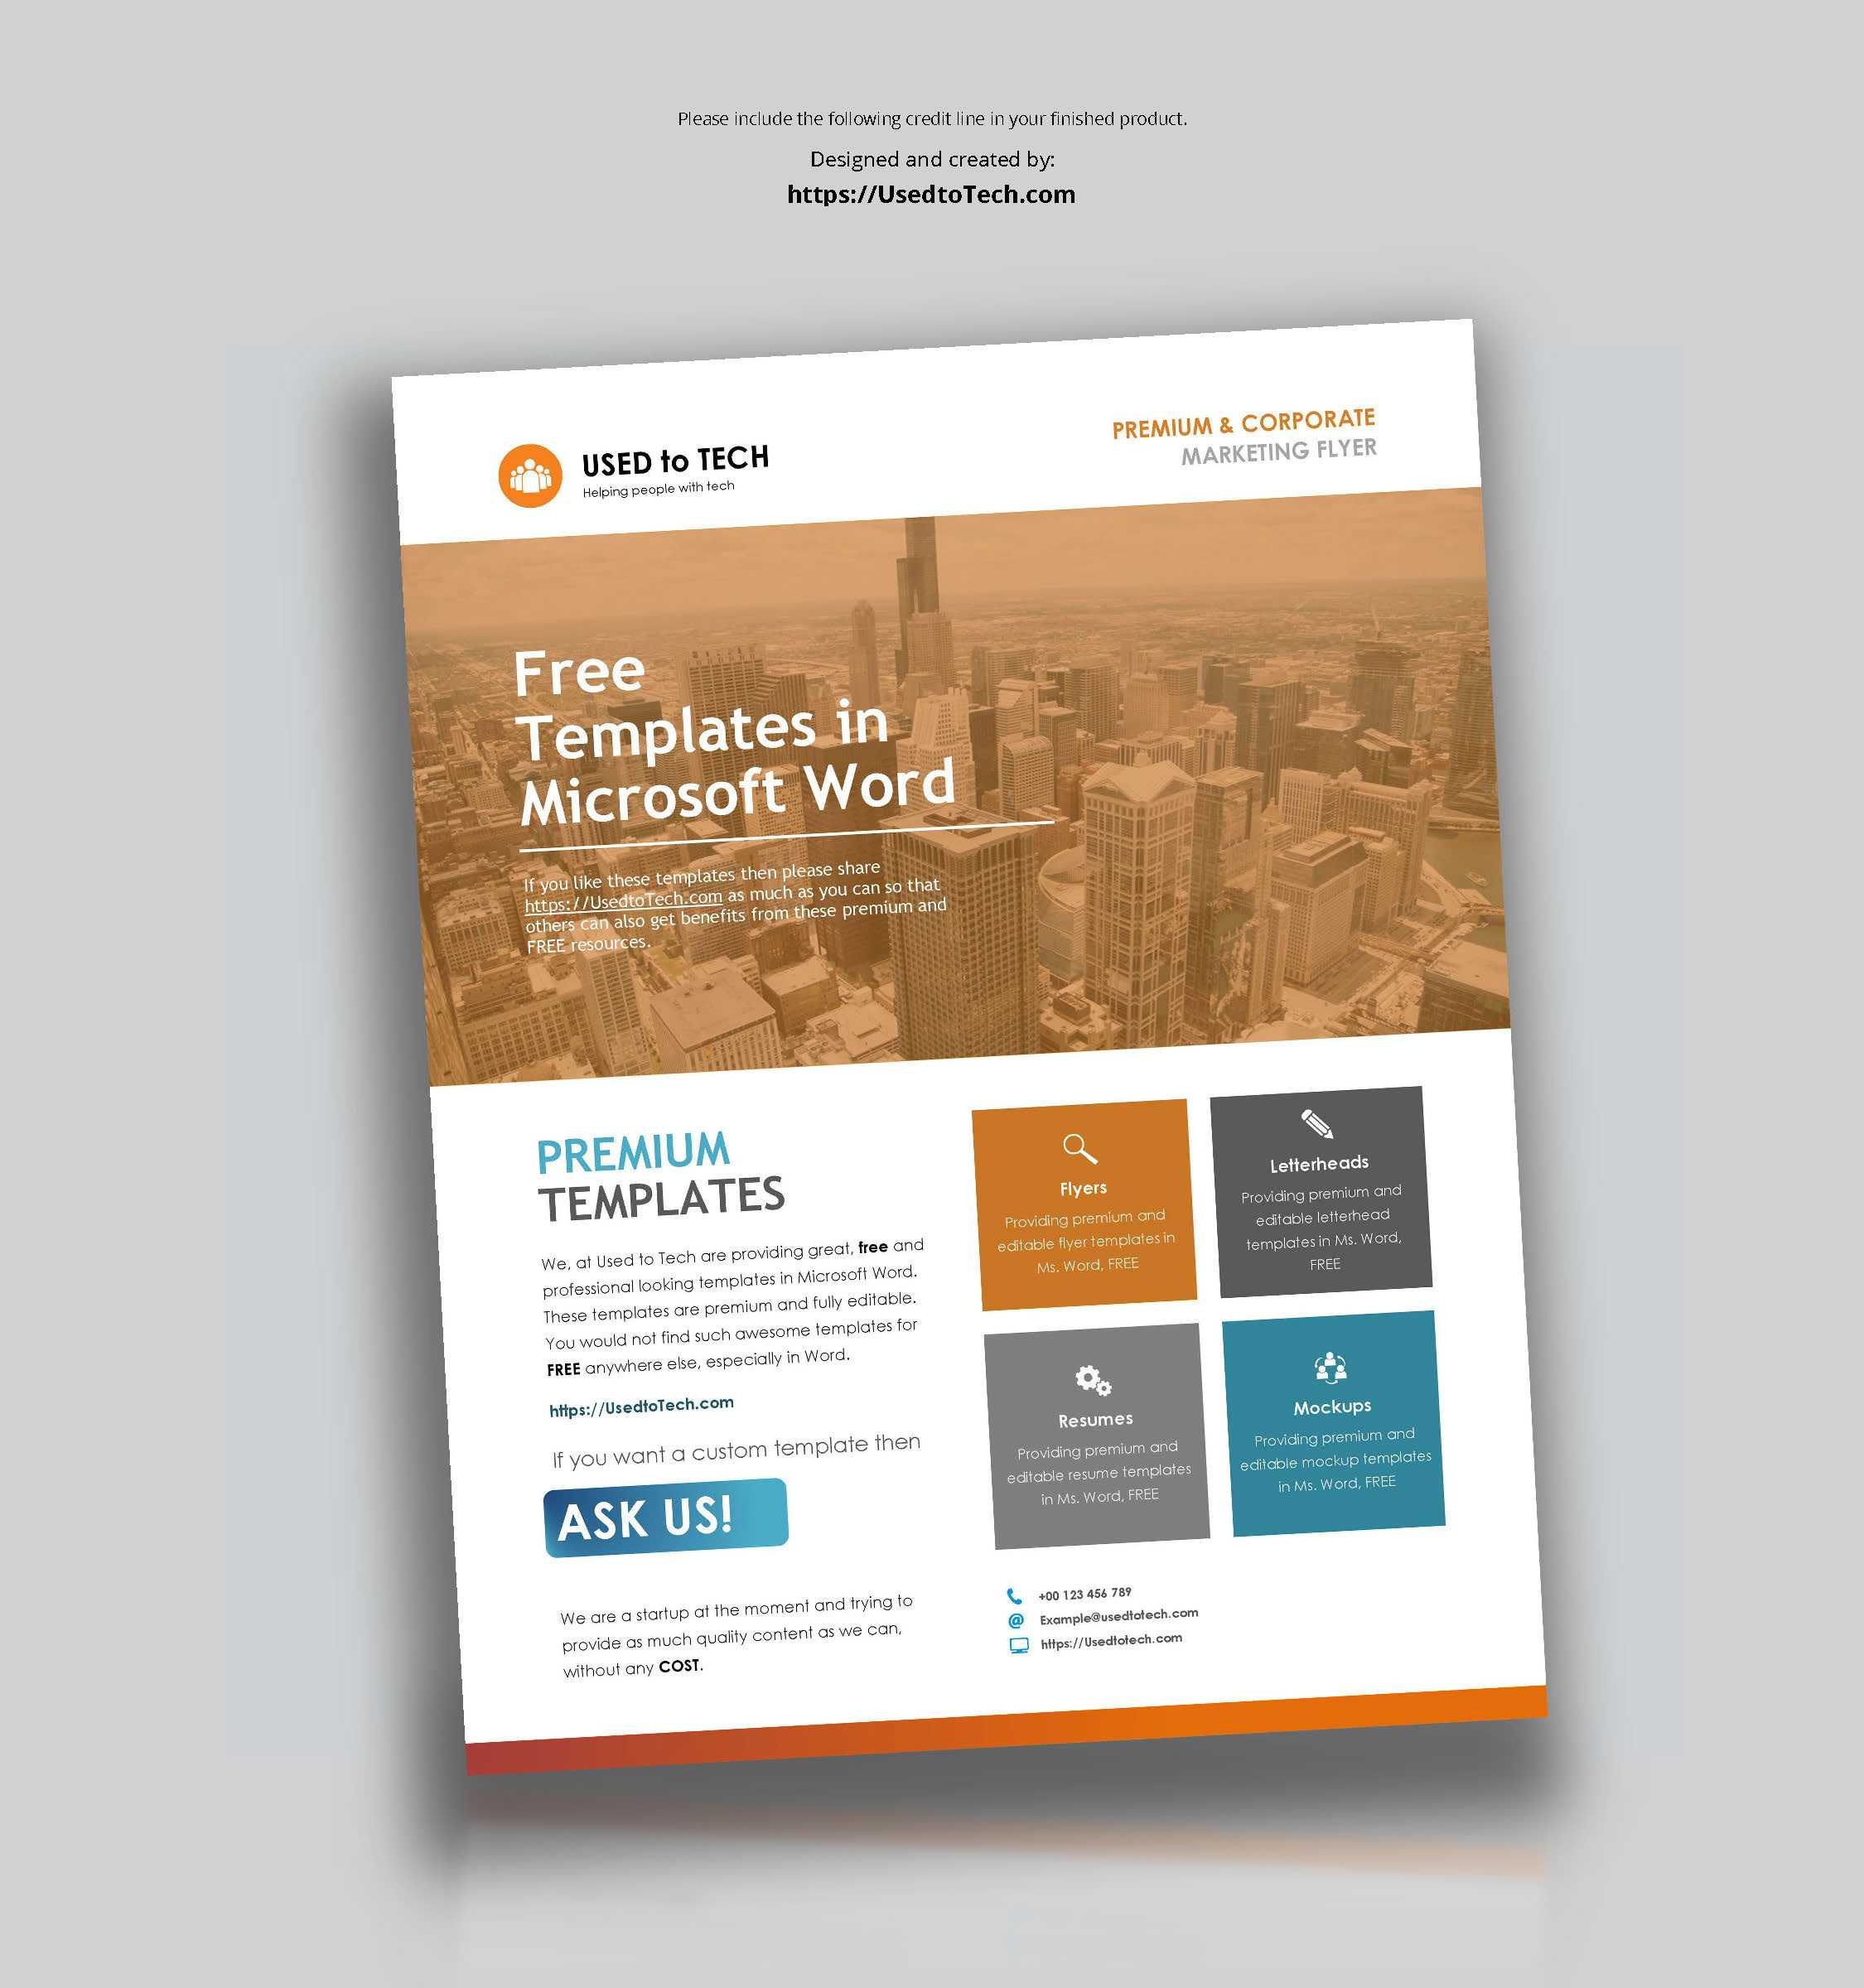 Corporate Flyer Design In Microsoft Word Free - Used To Tech Throughout Free Templates For Flyers Microsoft Word